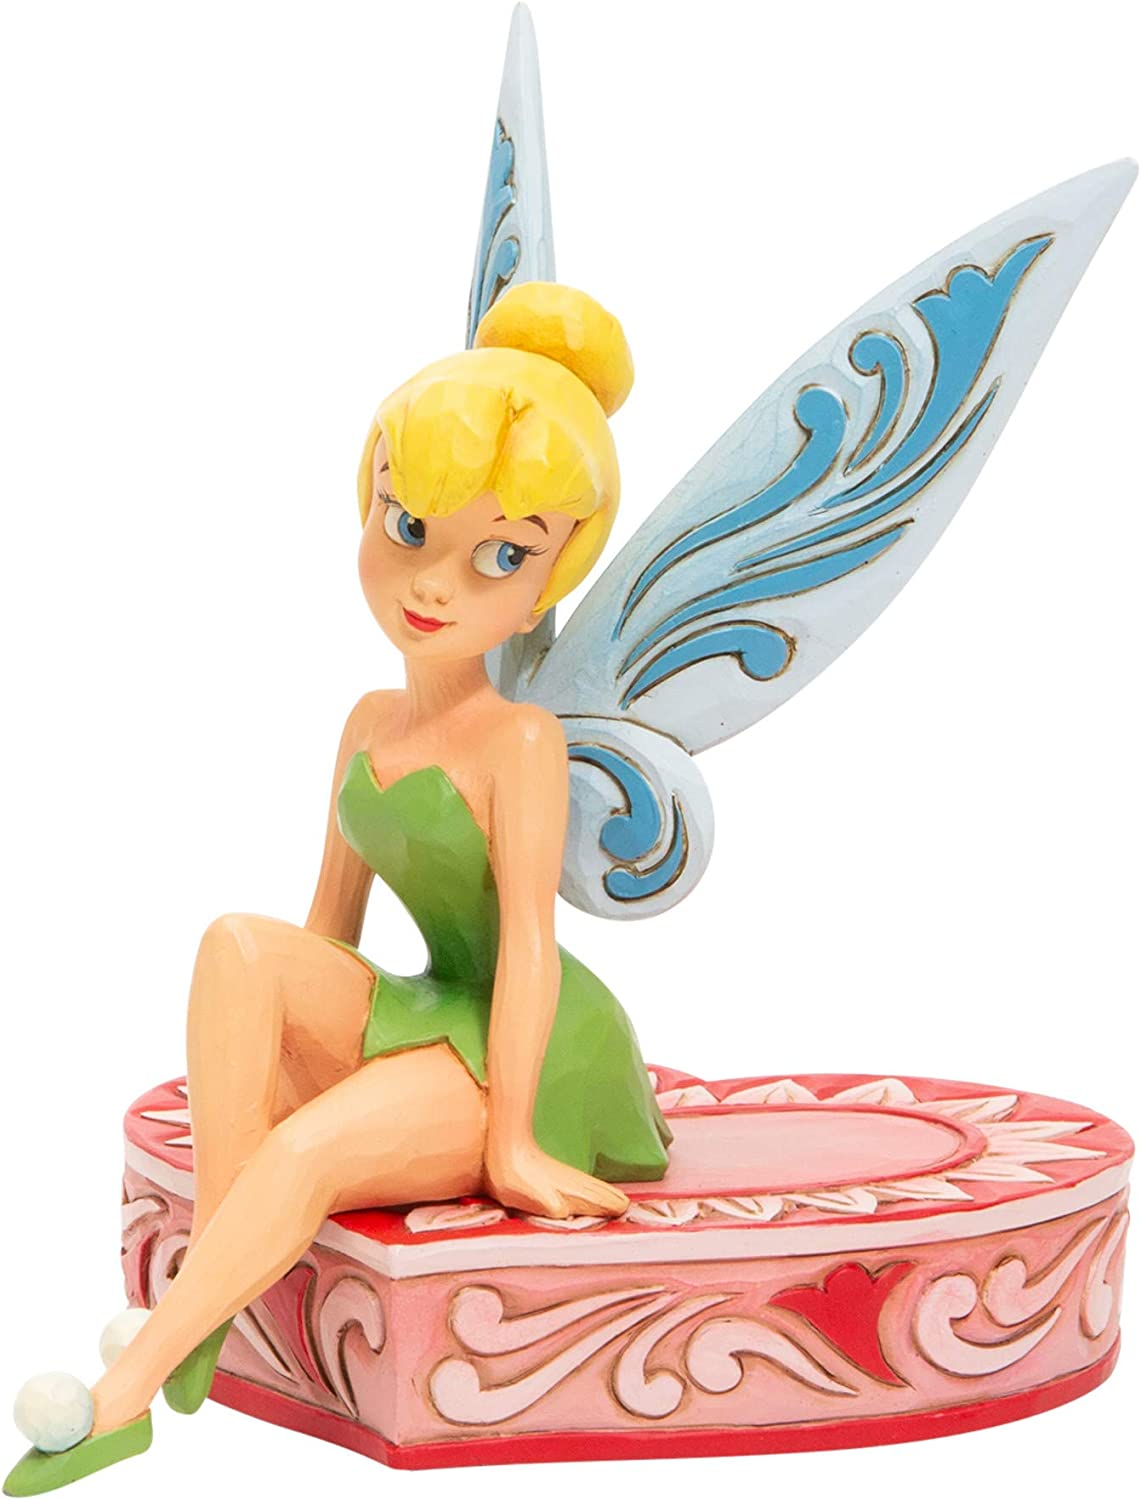 Enesco Disney Traditions by Jim Shore Peter Pan Tinker Bell Sitting on Heart Figurine, 5 Inch, Multicolor